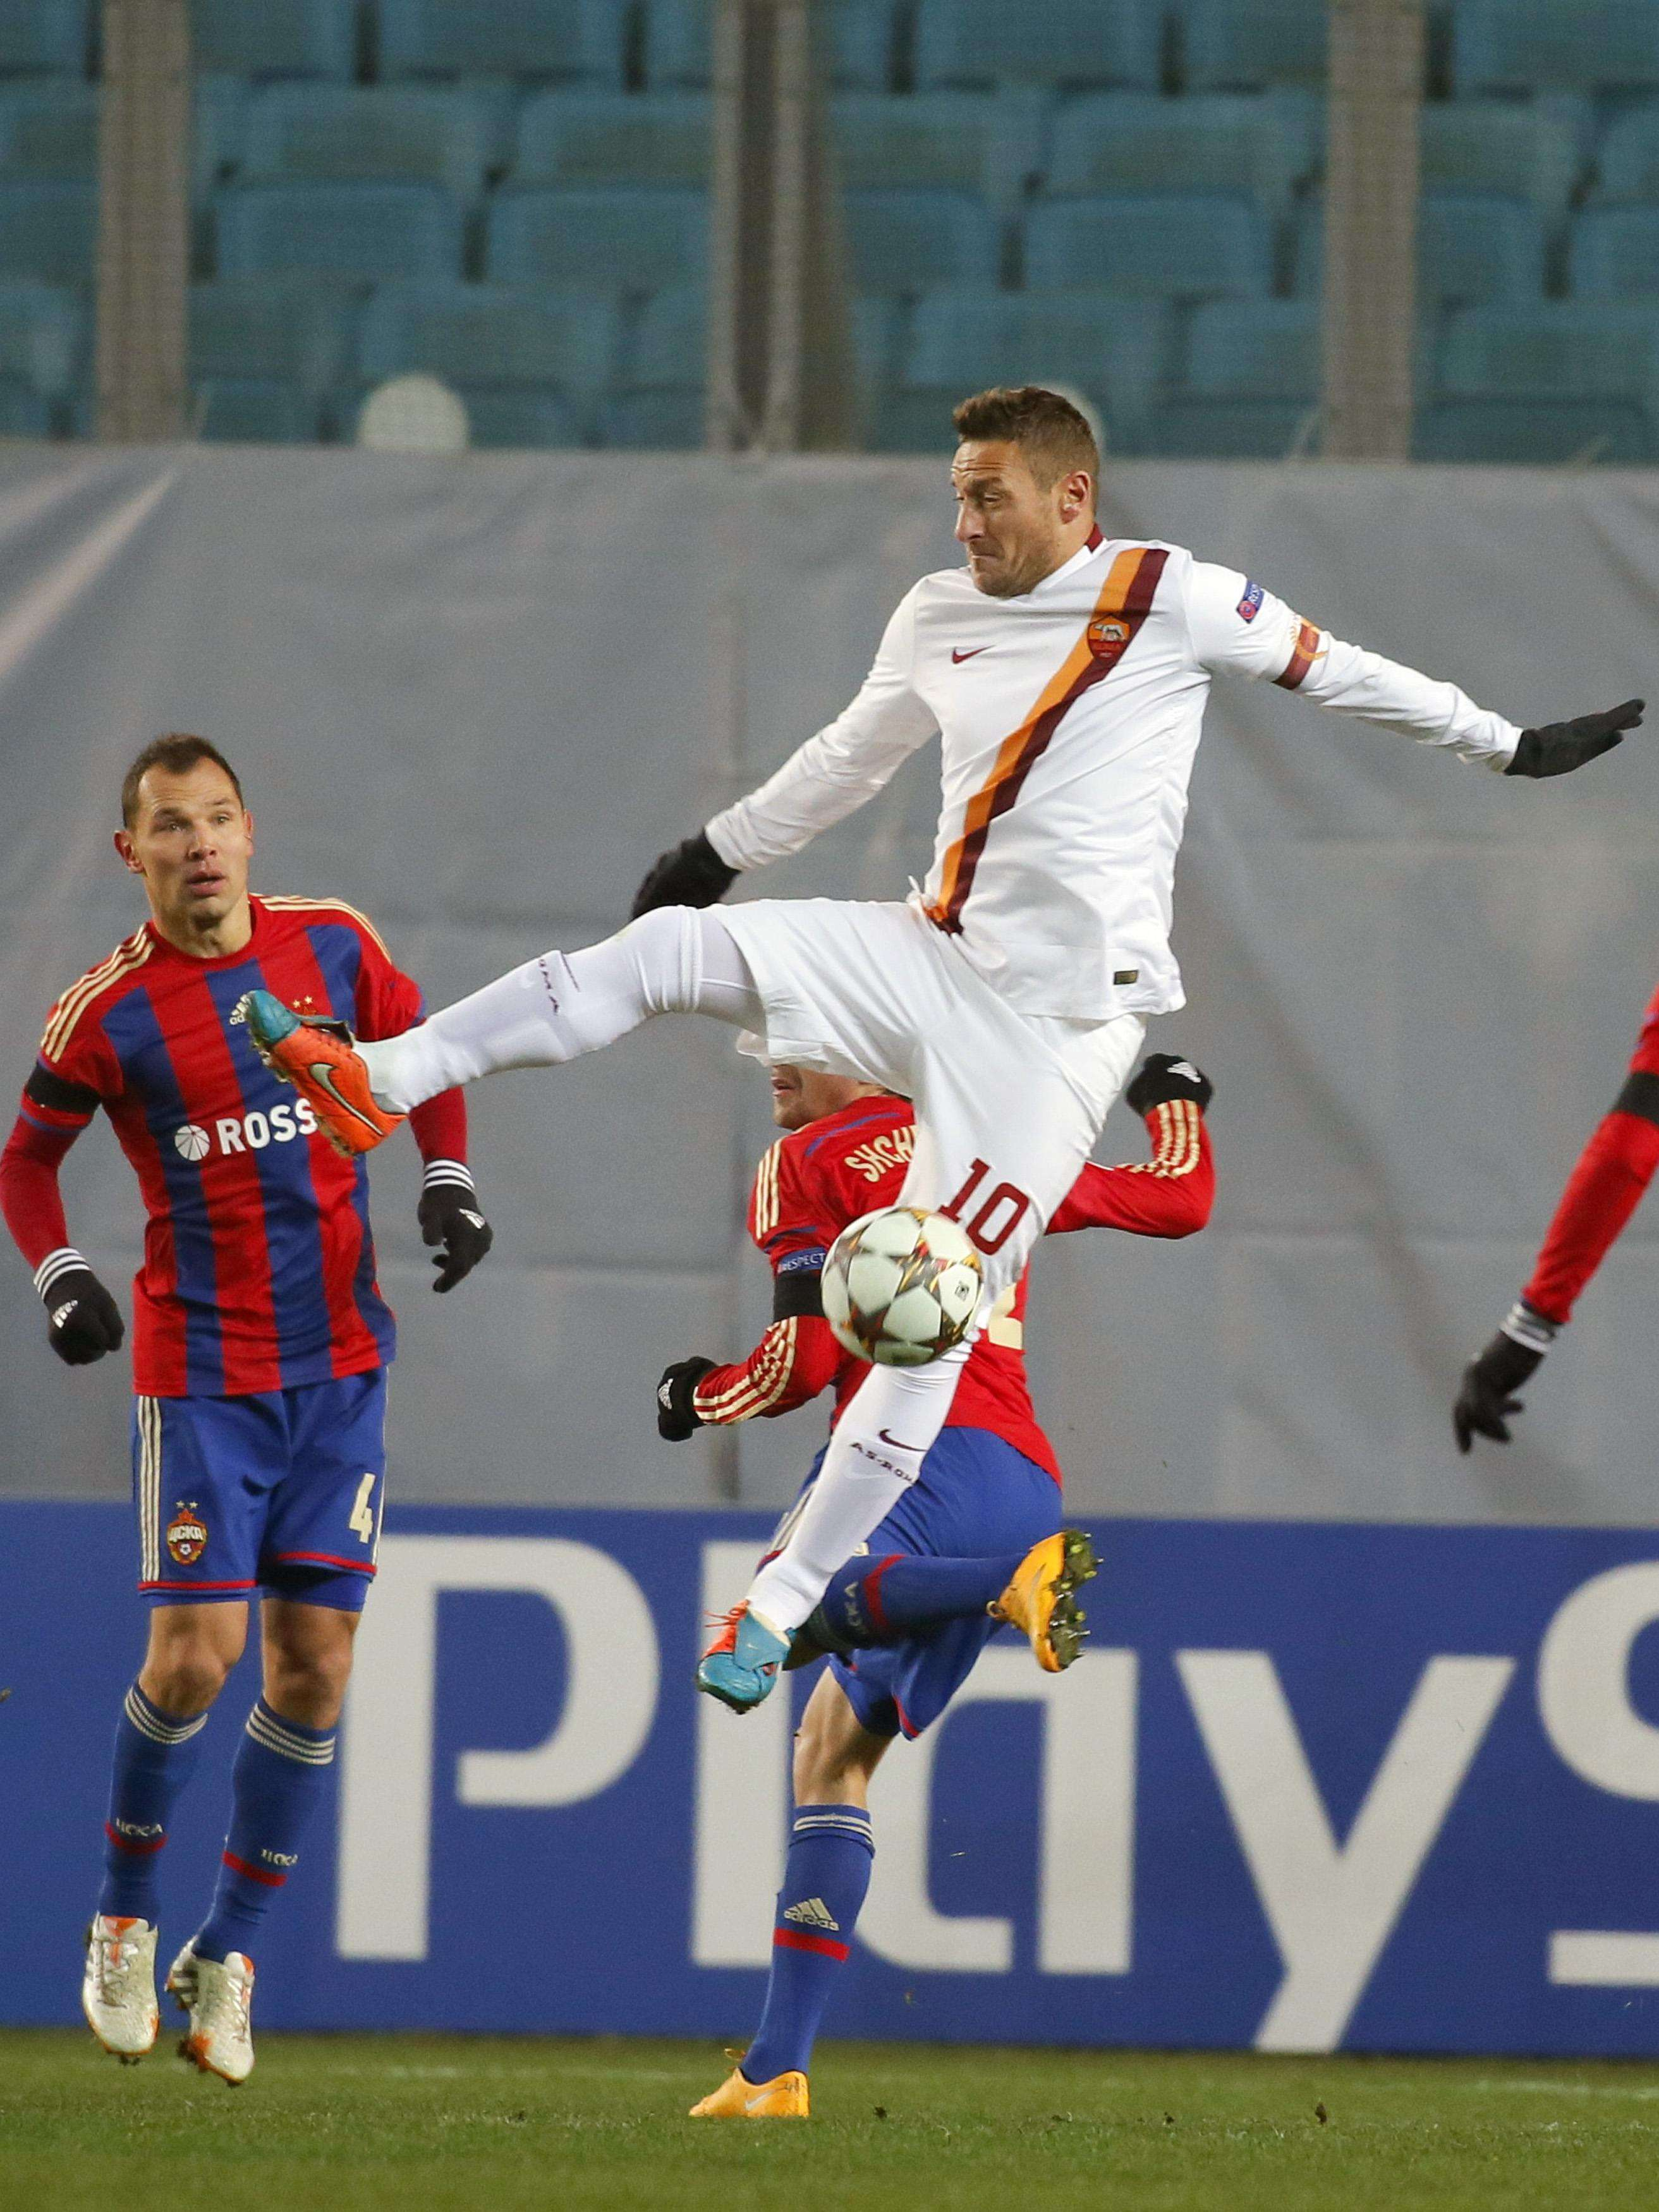 CSKA Moscow's Sergei Ignashevich (L) and Georgi Schennikov fights for the ball with AS Roma's Francesco Totti (10) during their Champions League Group E soccer match at the Arena Khimki stadium outside Moscow November 25, 2014. REUTERS/Maxim Shemetov (RUSSIA - Tags: SPORT SOCCER) Foto: MAXIM SHEMETOV/REUTERS